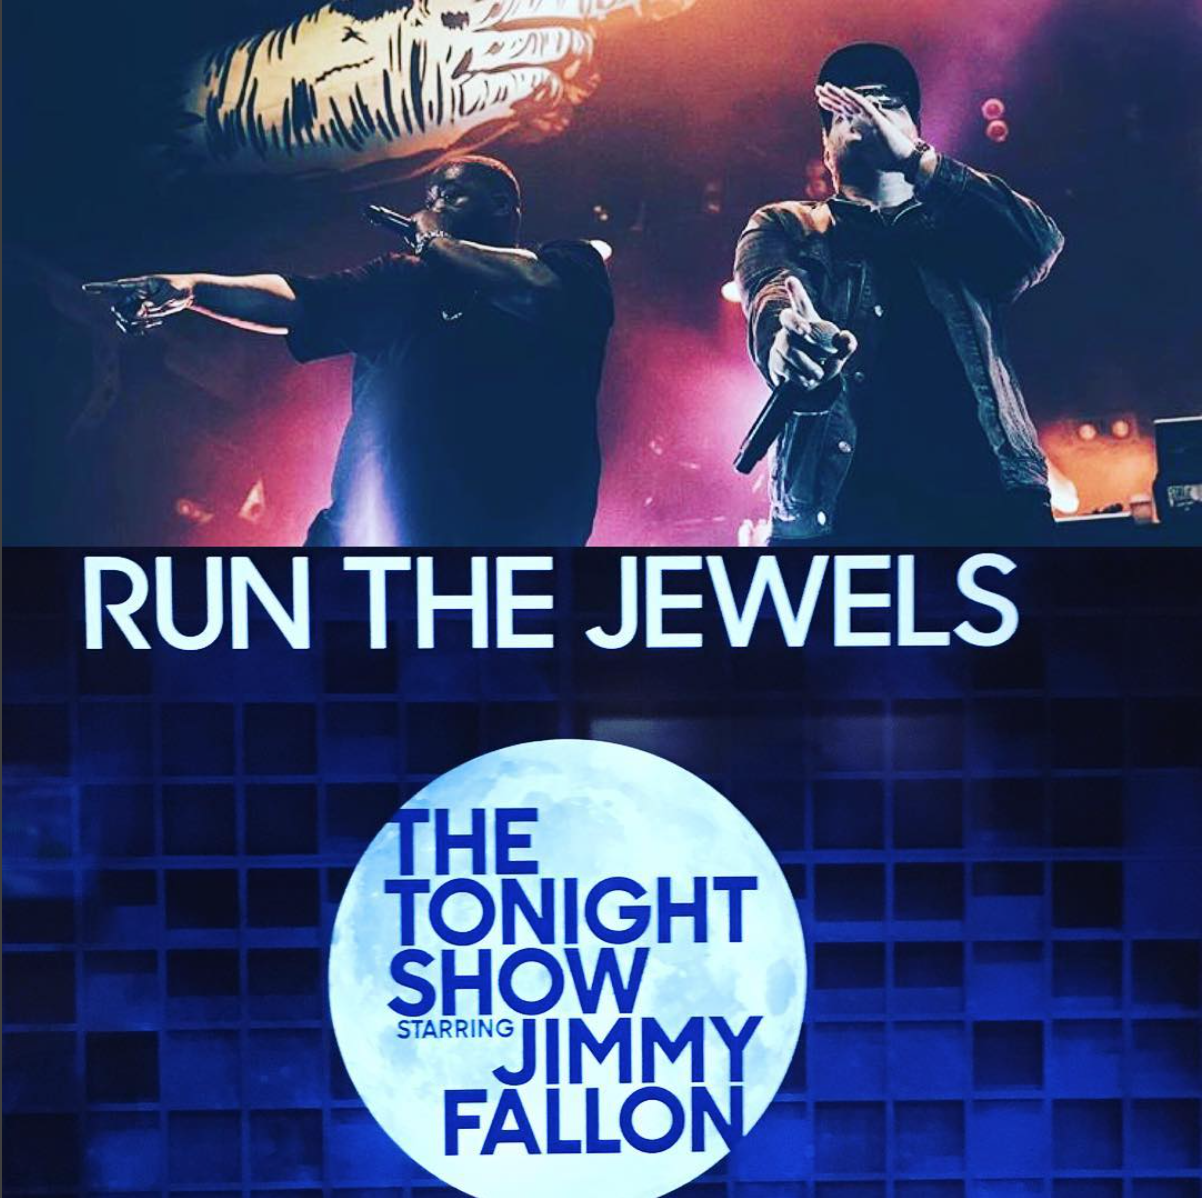 - Live photograph used for RUN THE JEWEL's performance announcement on The Tonight Show with Jimmy Fallon.